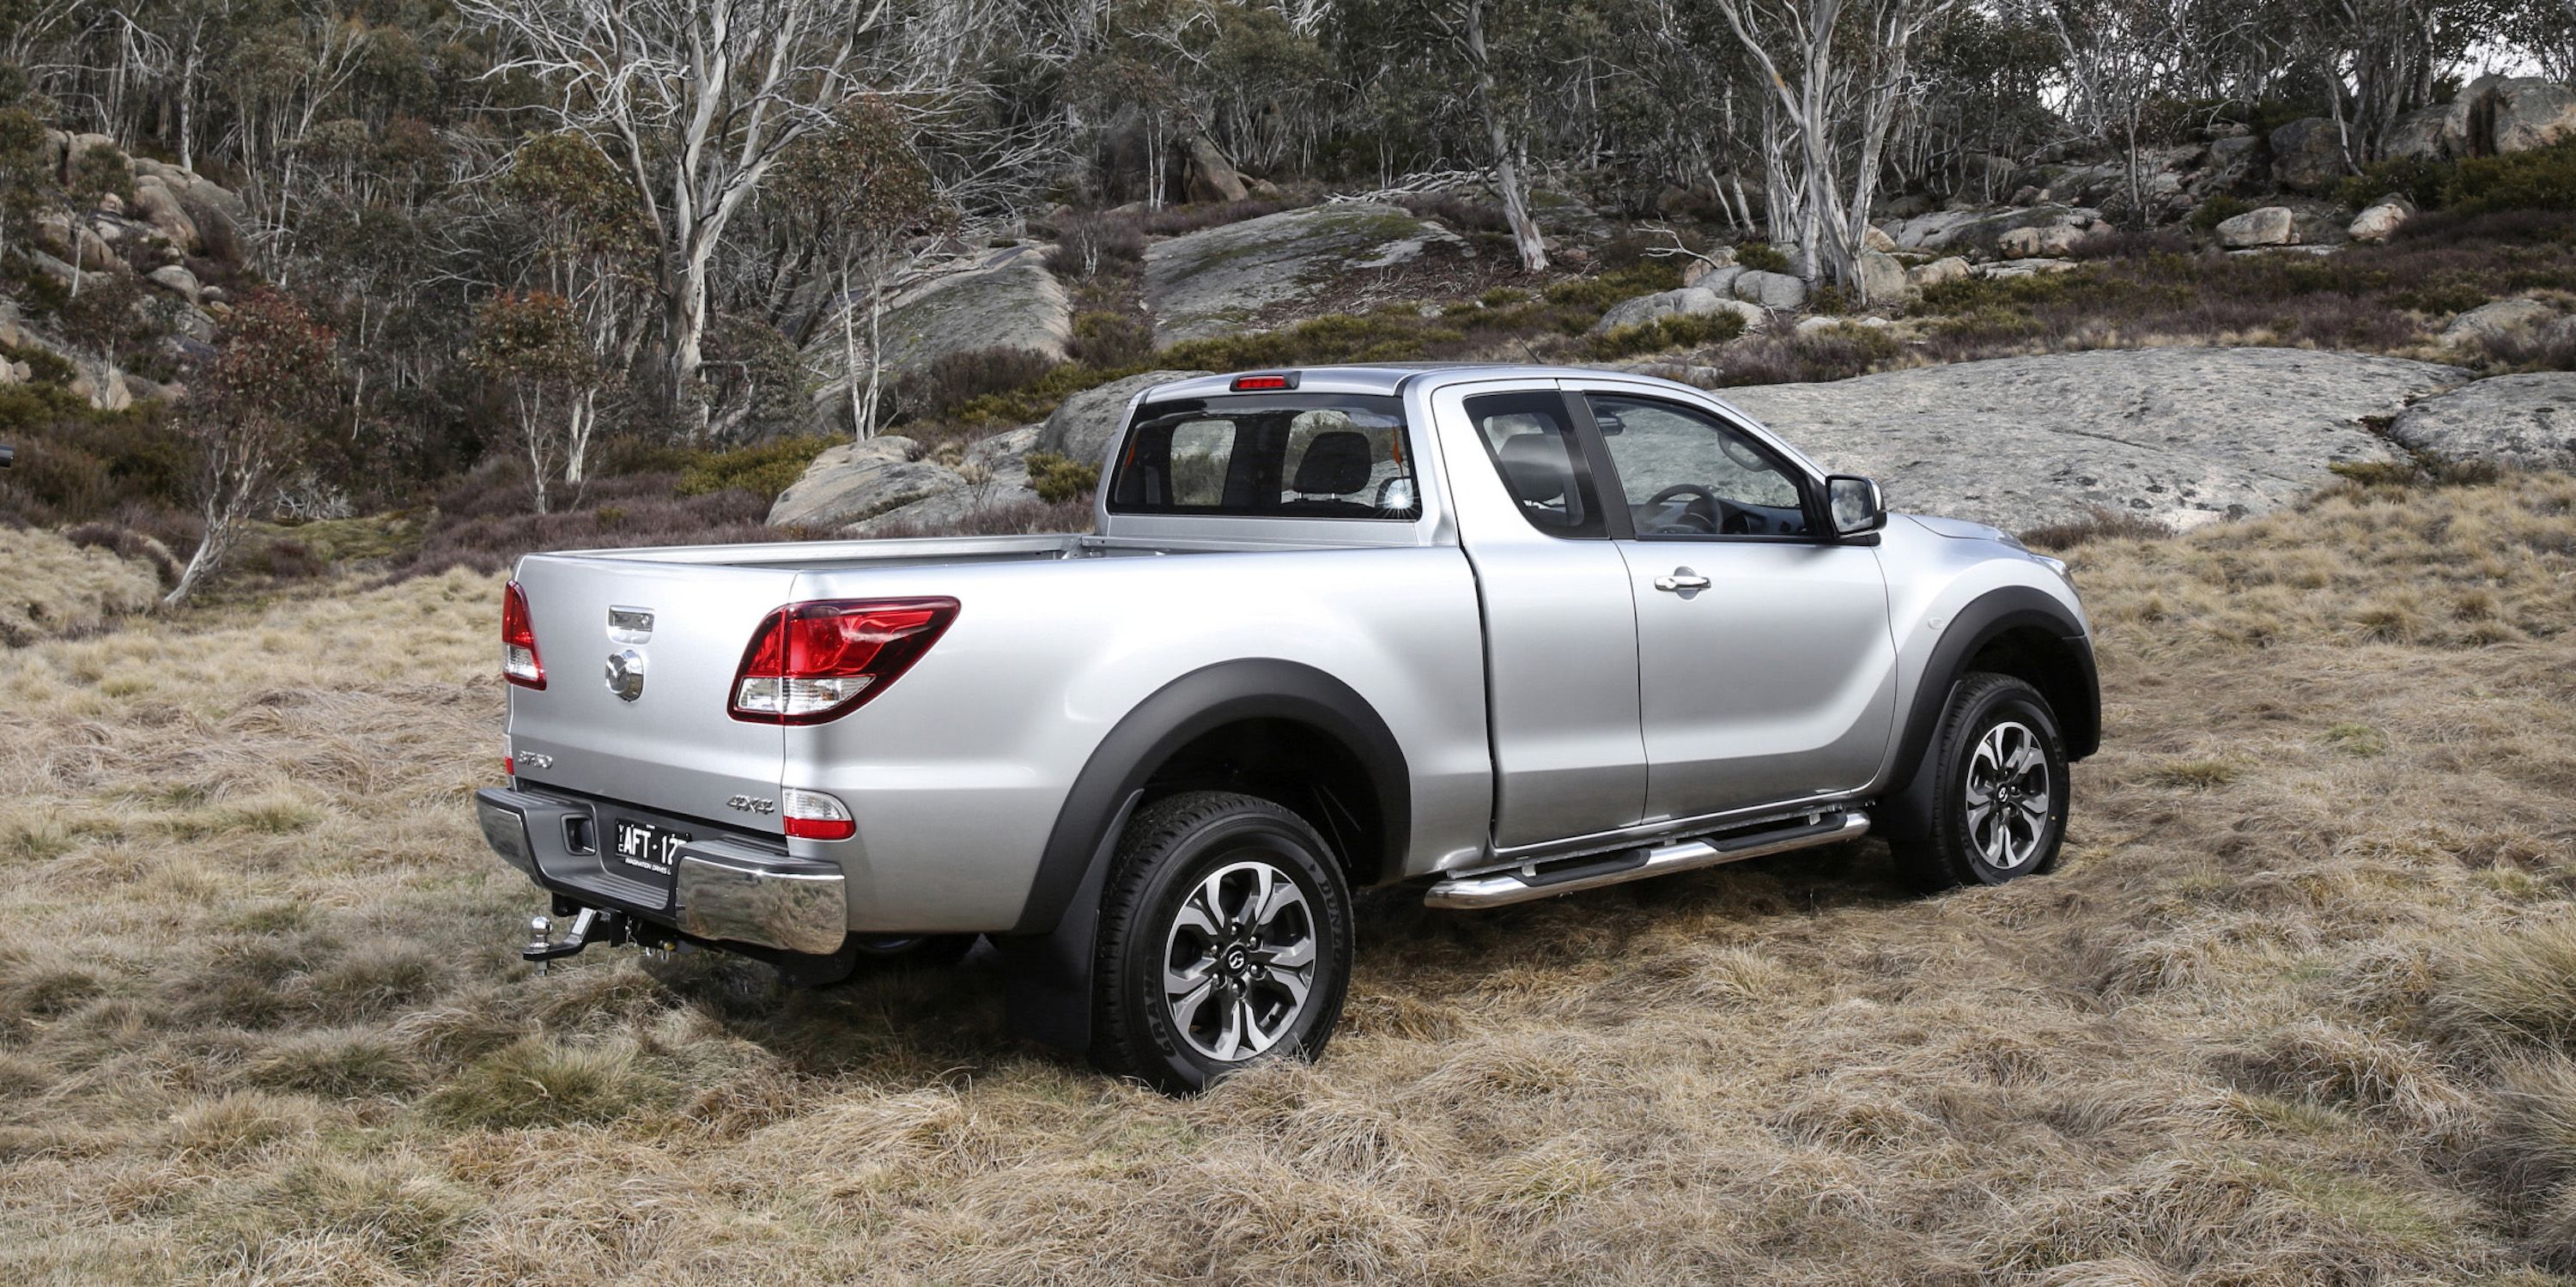 2016 mazda bt 50 review caradvice. Black Bedroom Furniture Sets. Home Design Ideas